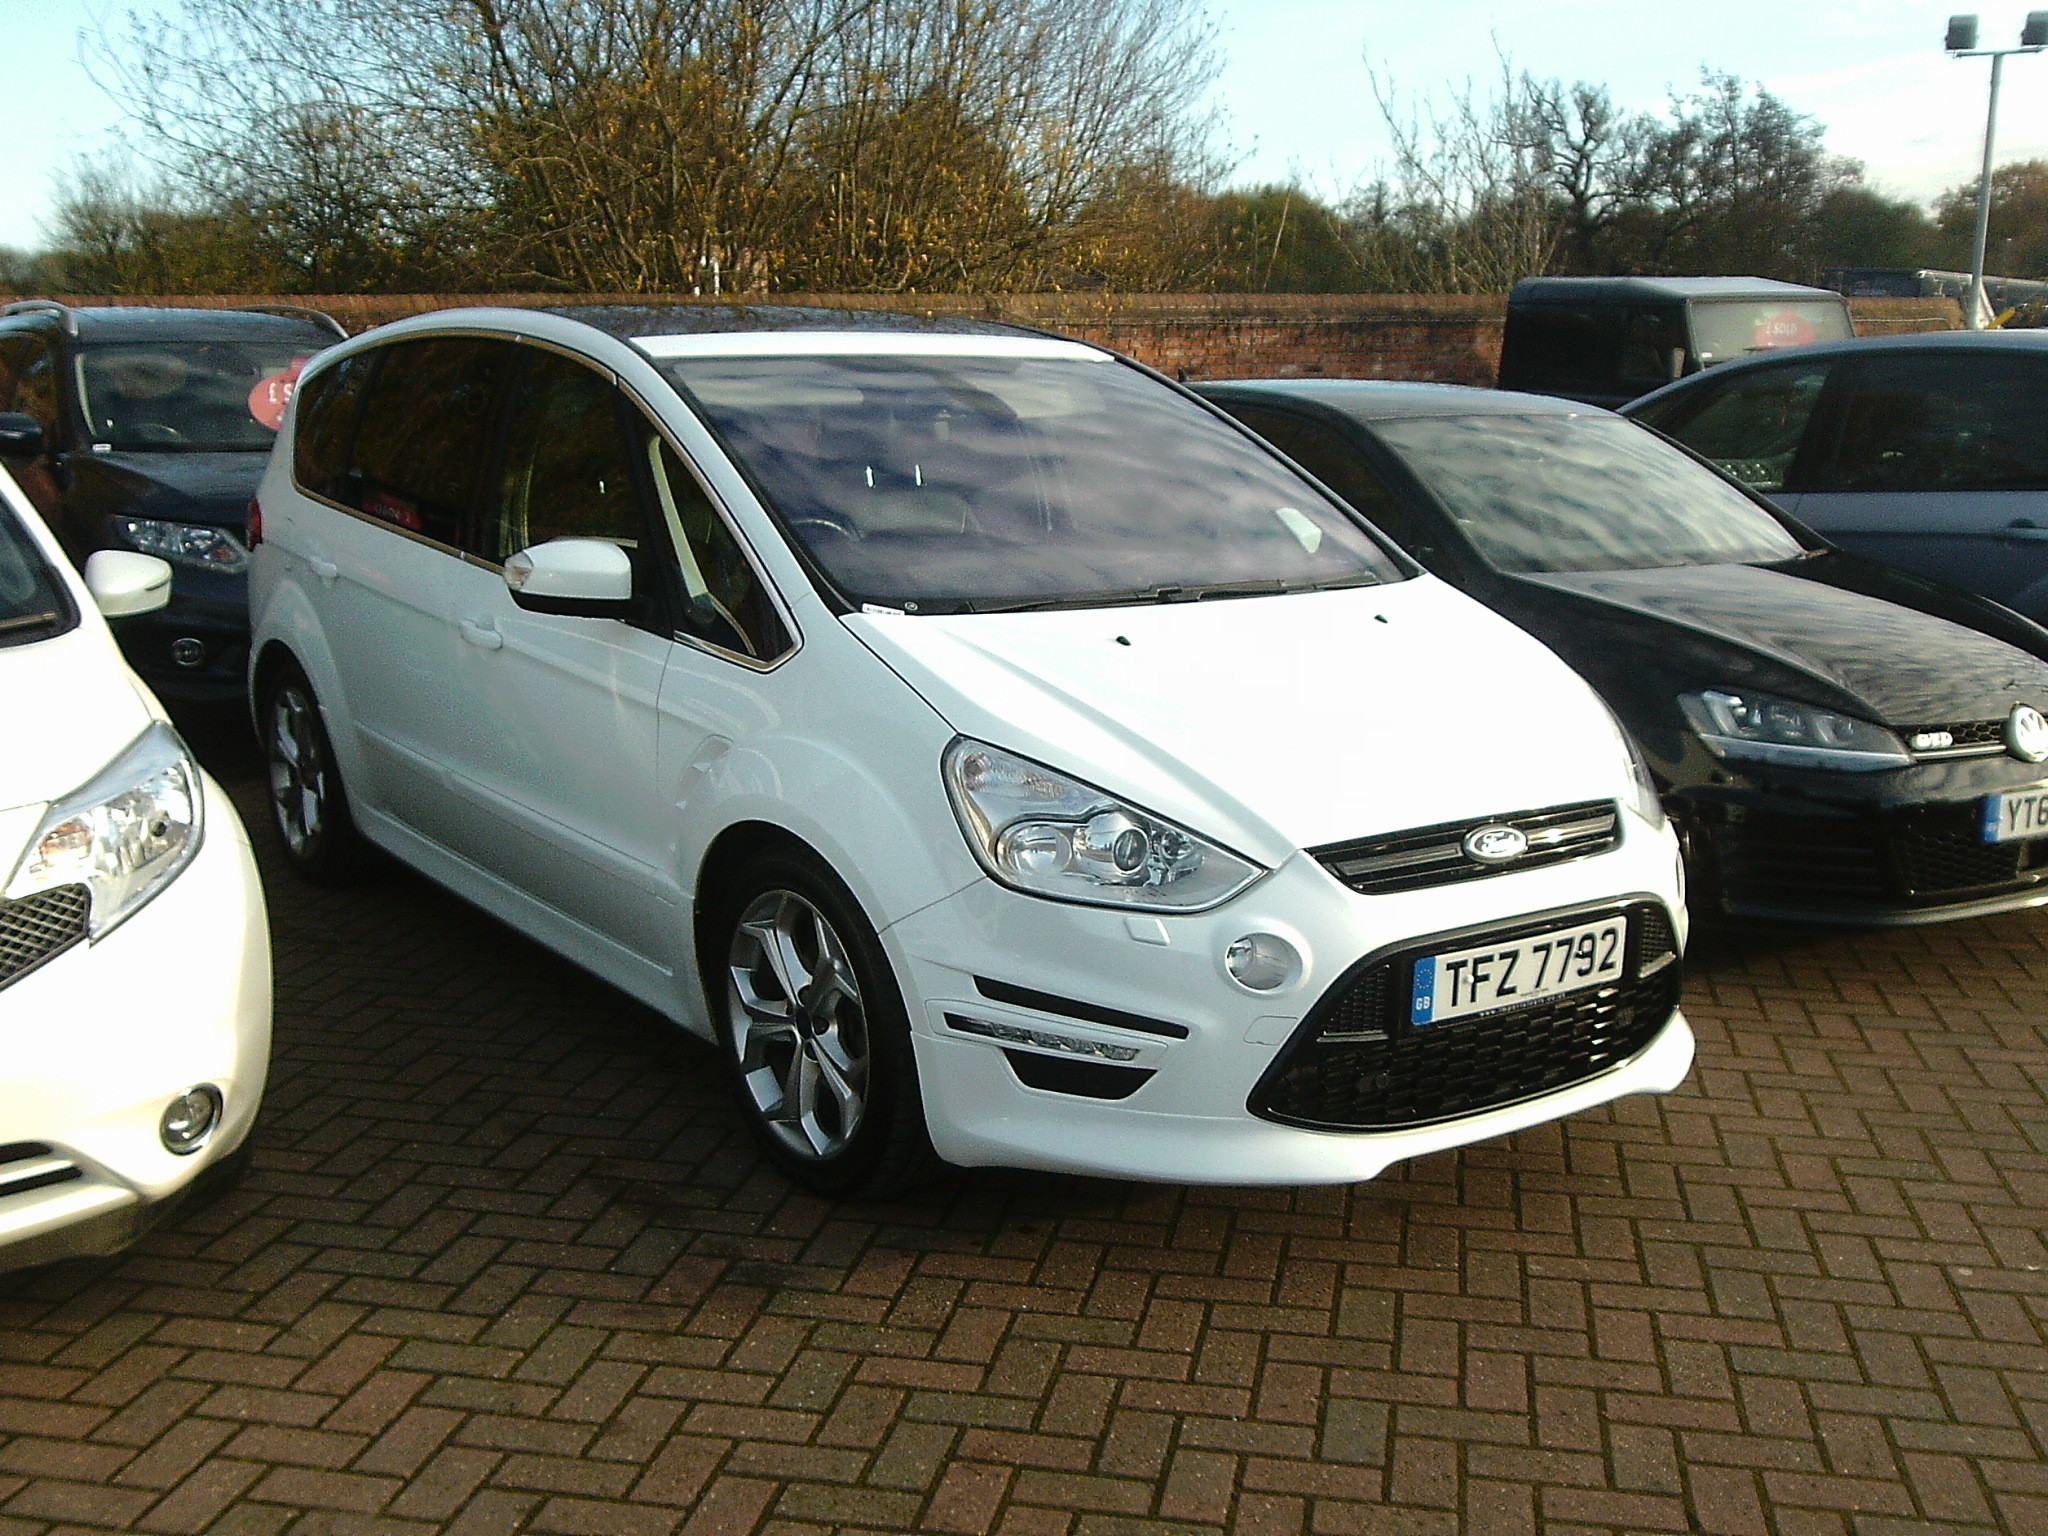 used ford s max for sale second hand smax finance deals uk